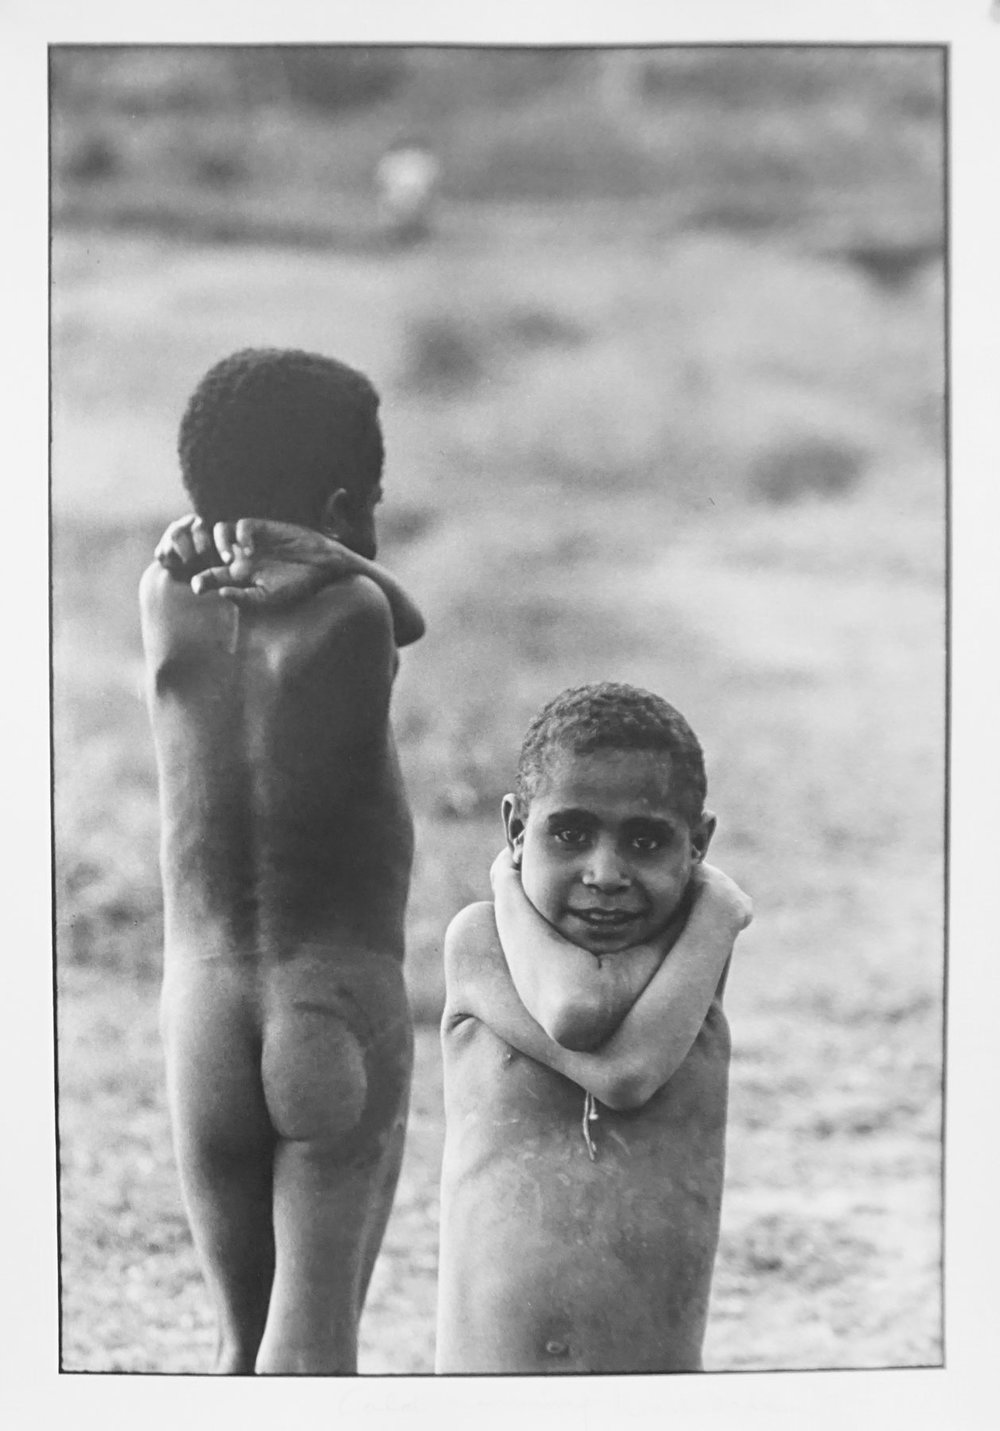 74. Richard Woldendorp, 'Cold Morning, Baliem Valley, West Irian Jaya, Indonesia', BW248, taken and printed in 1971, Vintage Print